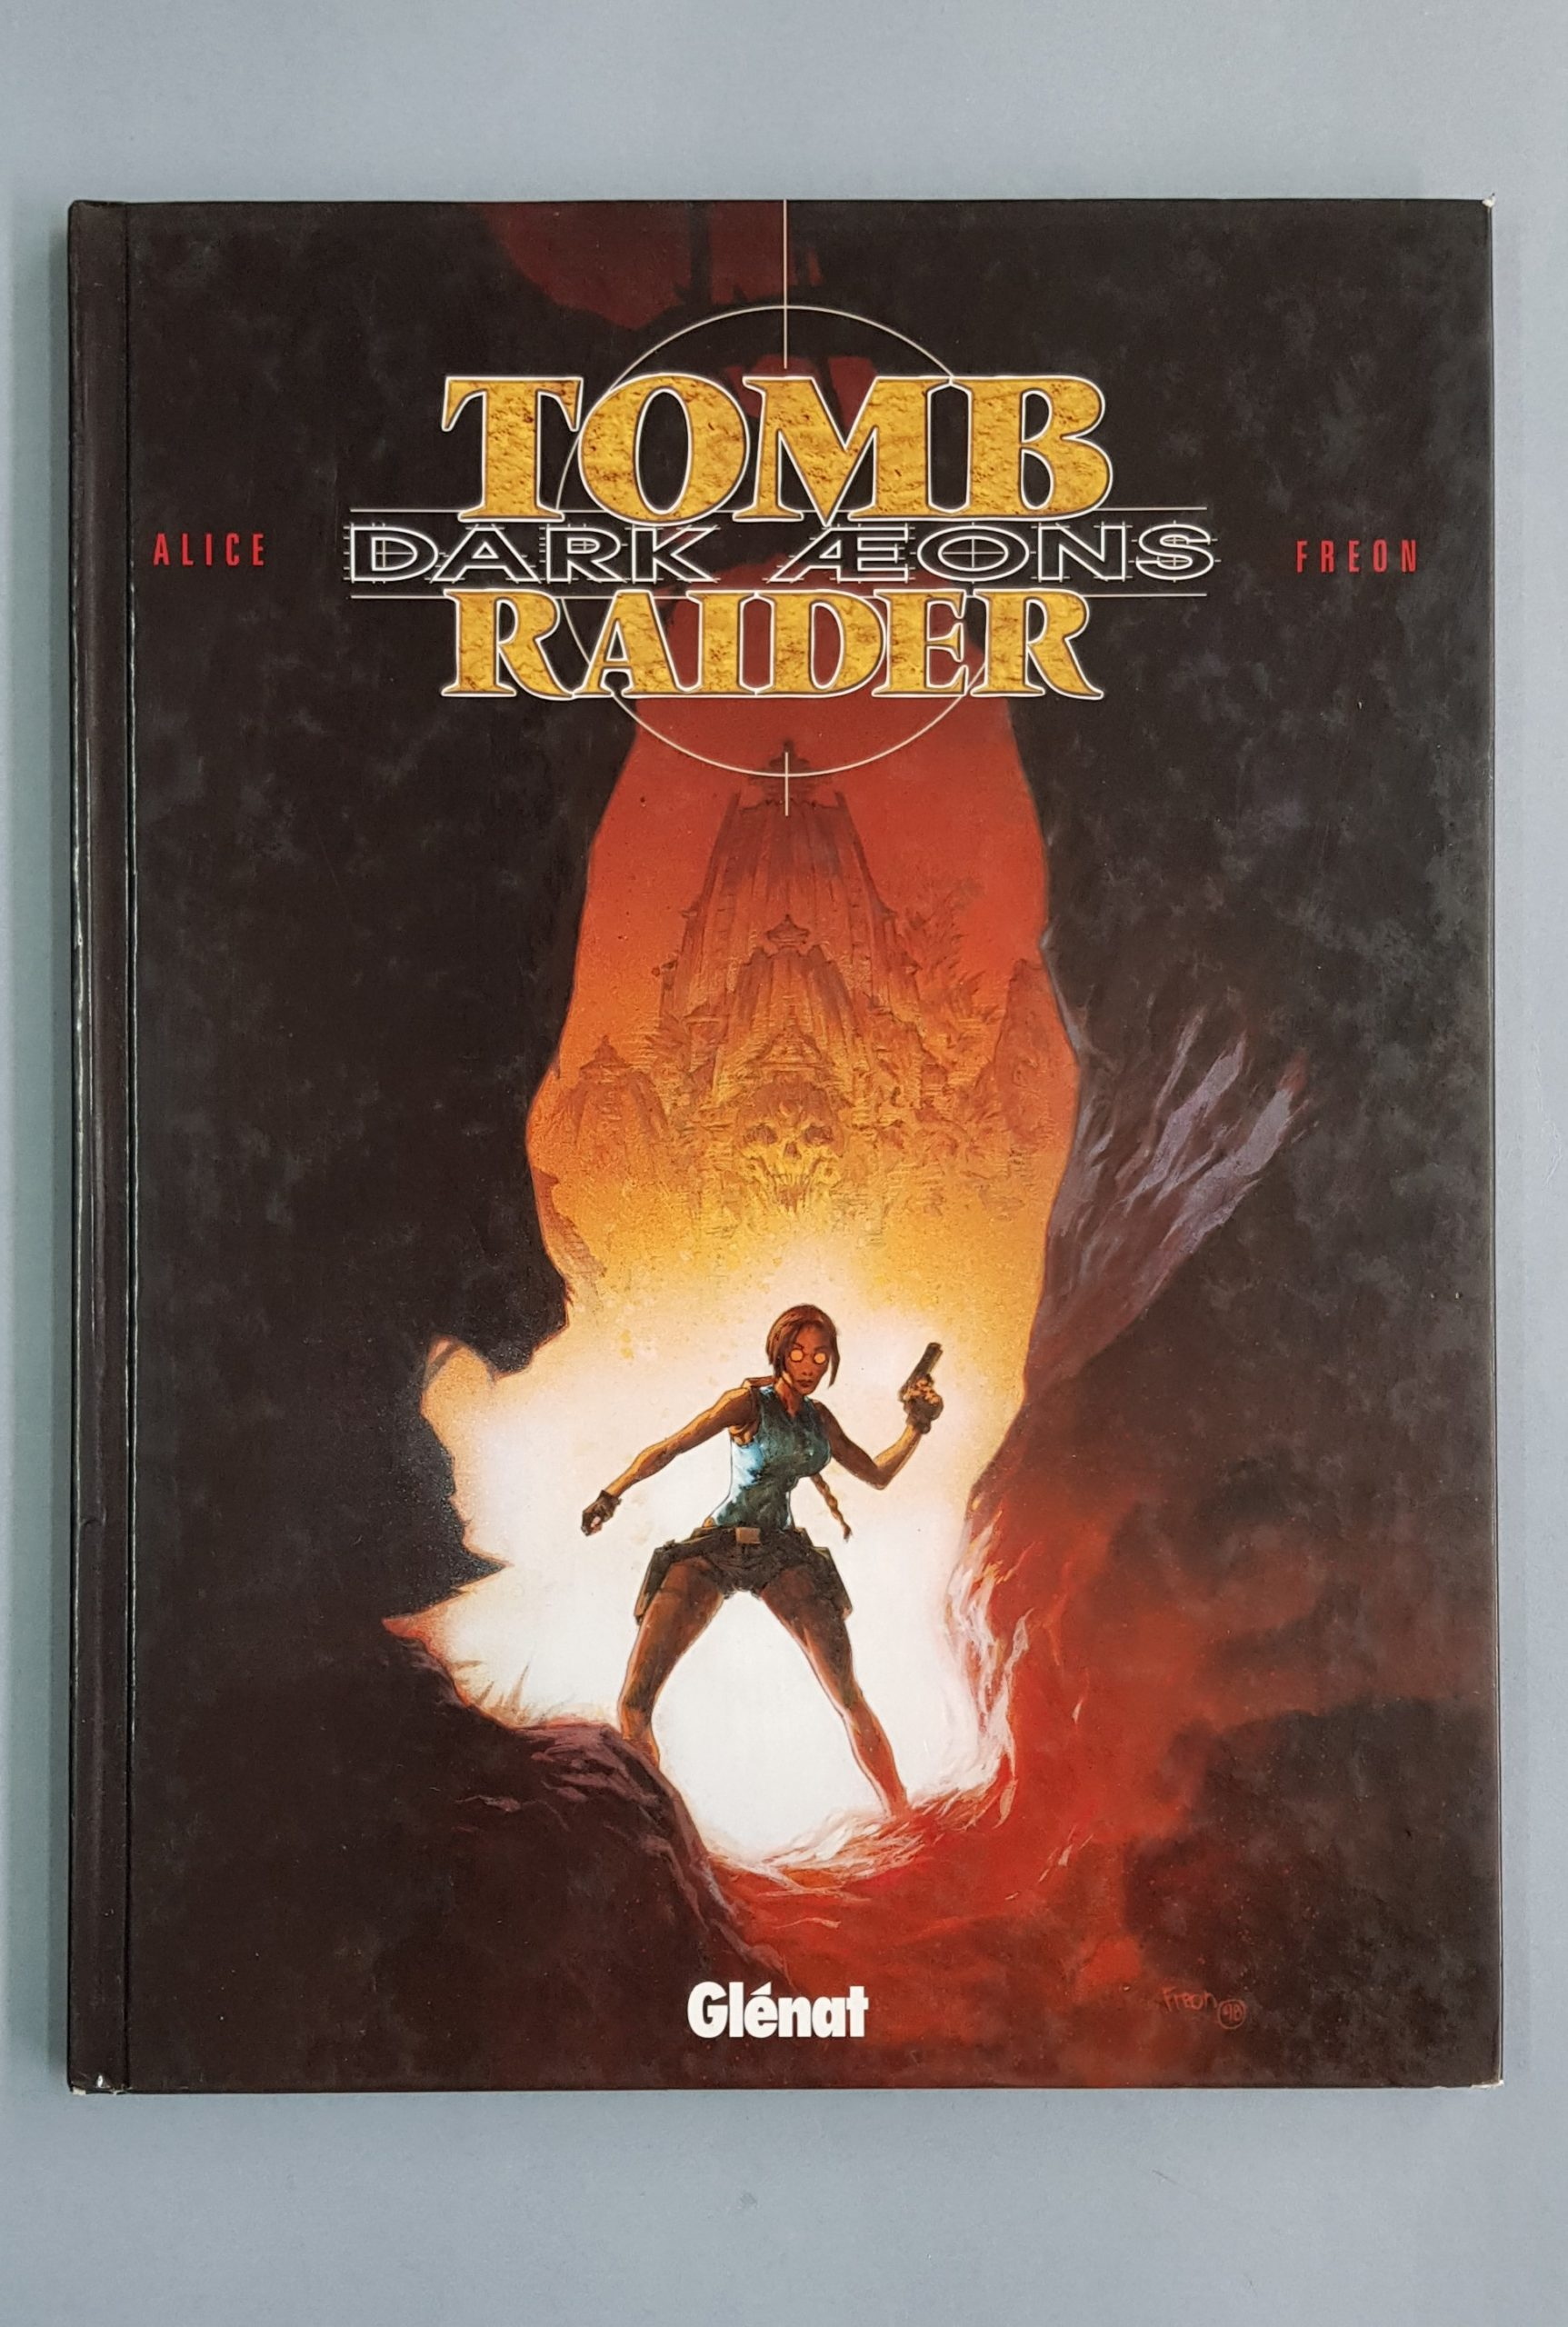 TOMB RAIDER – DARK AEONS